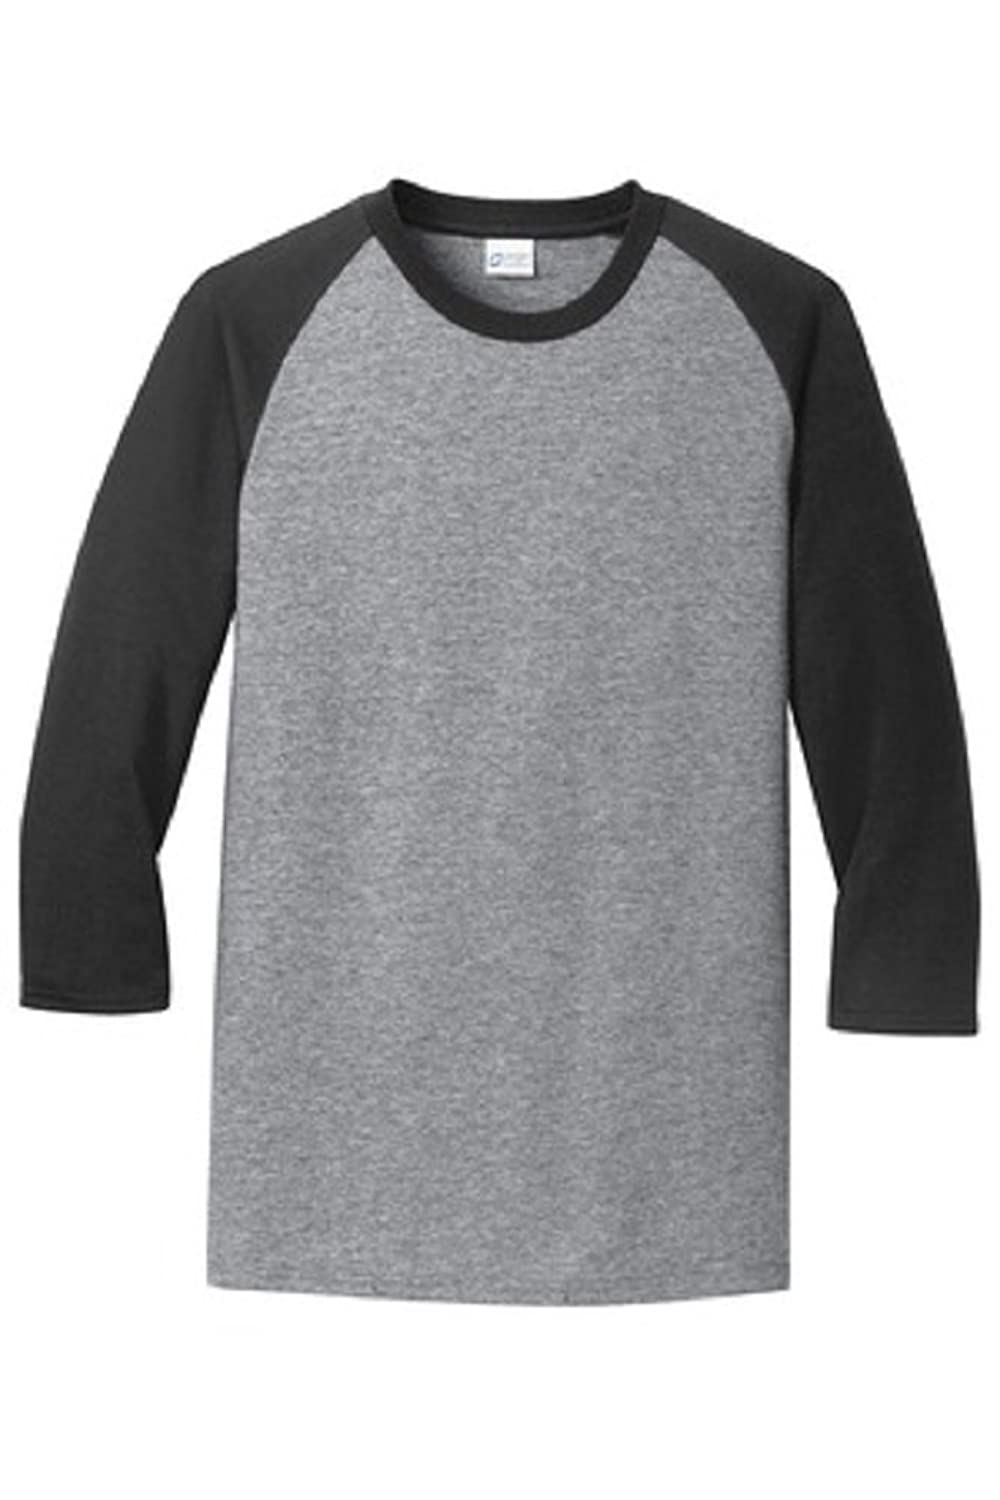 Pro tag 100 cotton 3 4 sleeve raglan baseball shirt in white black - Port Company Men S Plain Baseball 3 4 Sleeve Raglan T Shirt At Amazon Men S Clothing Store